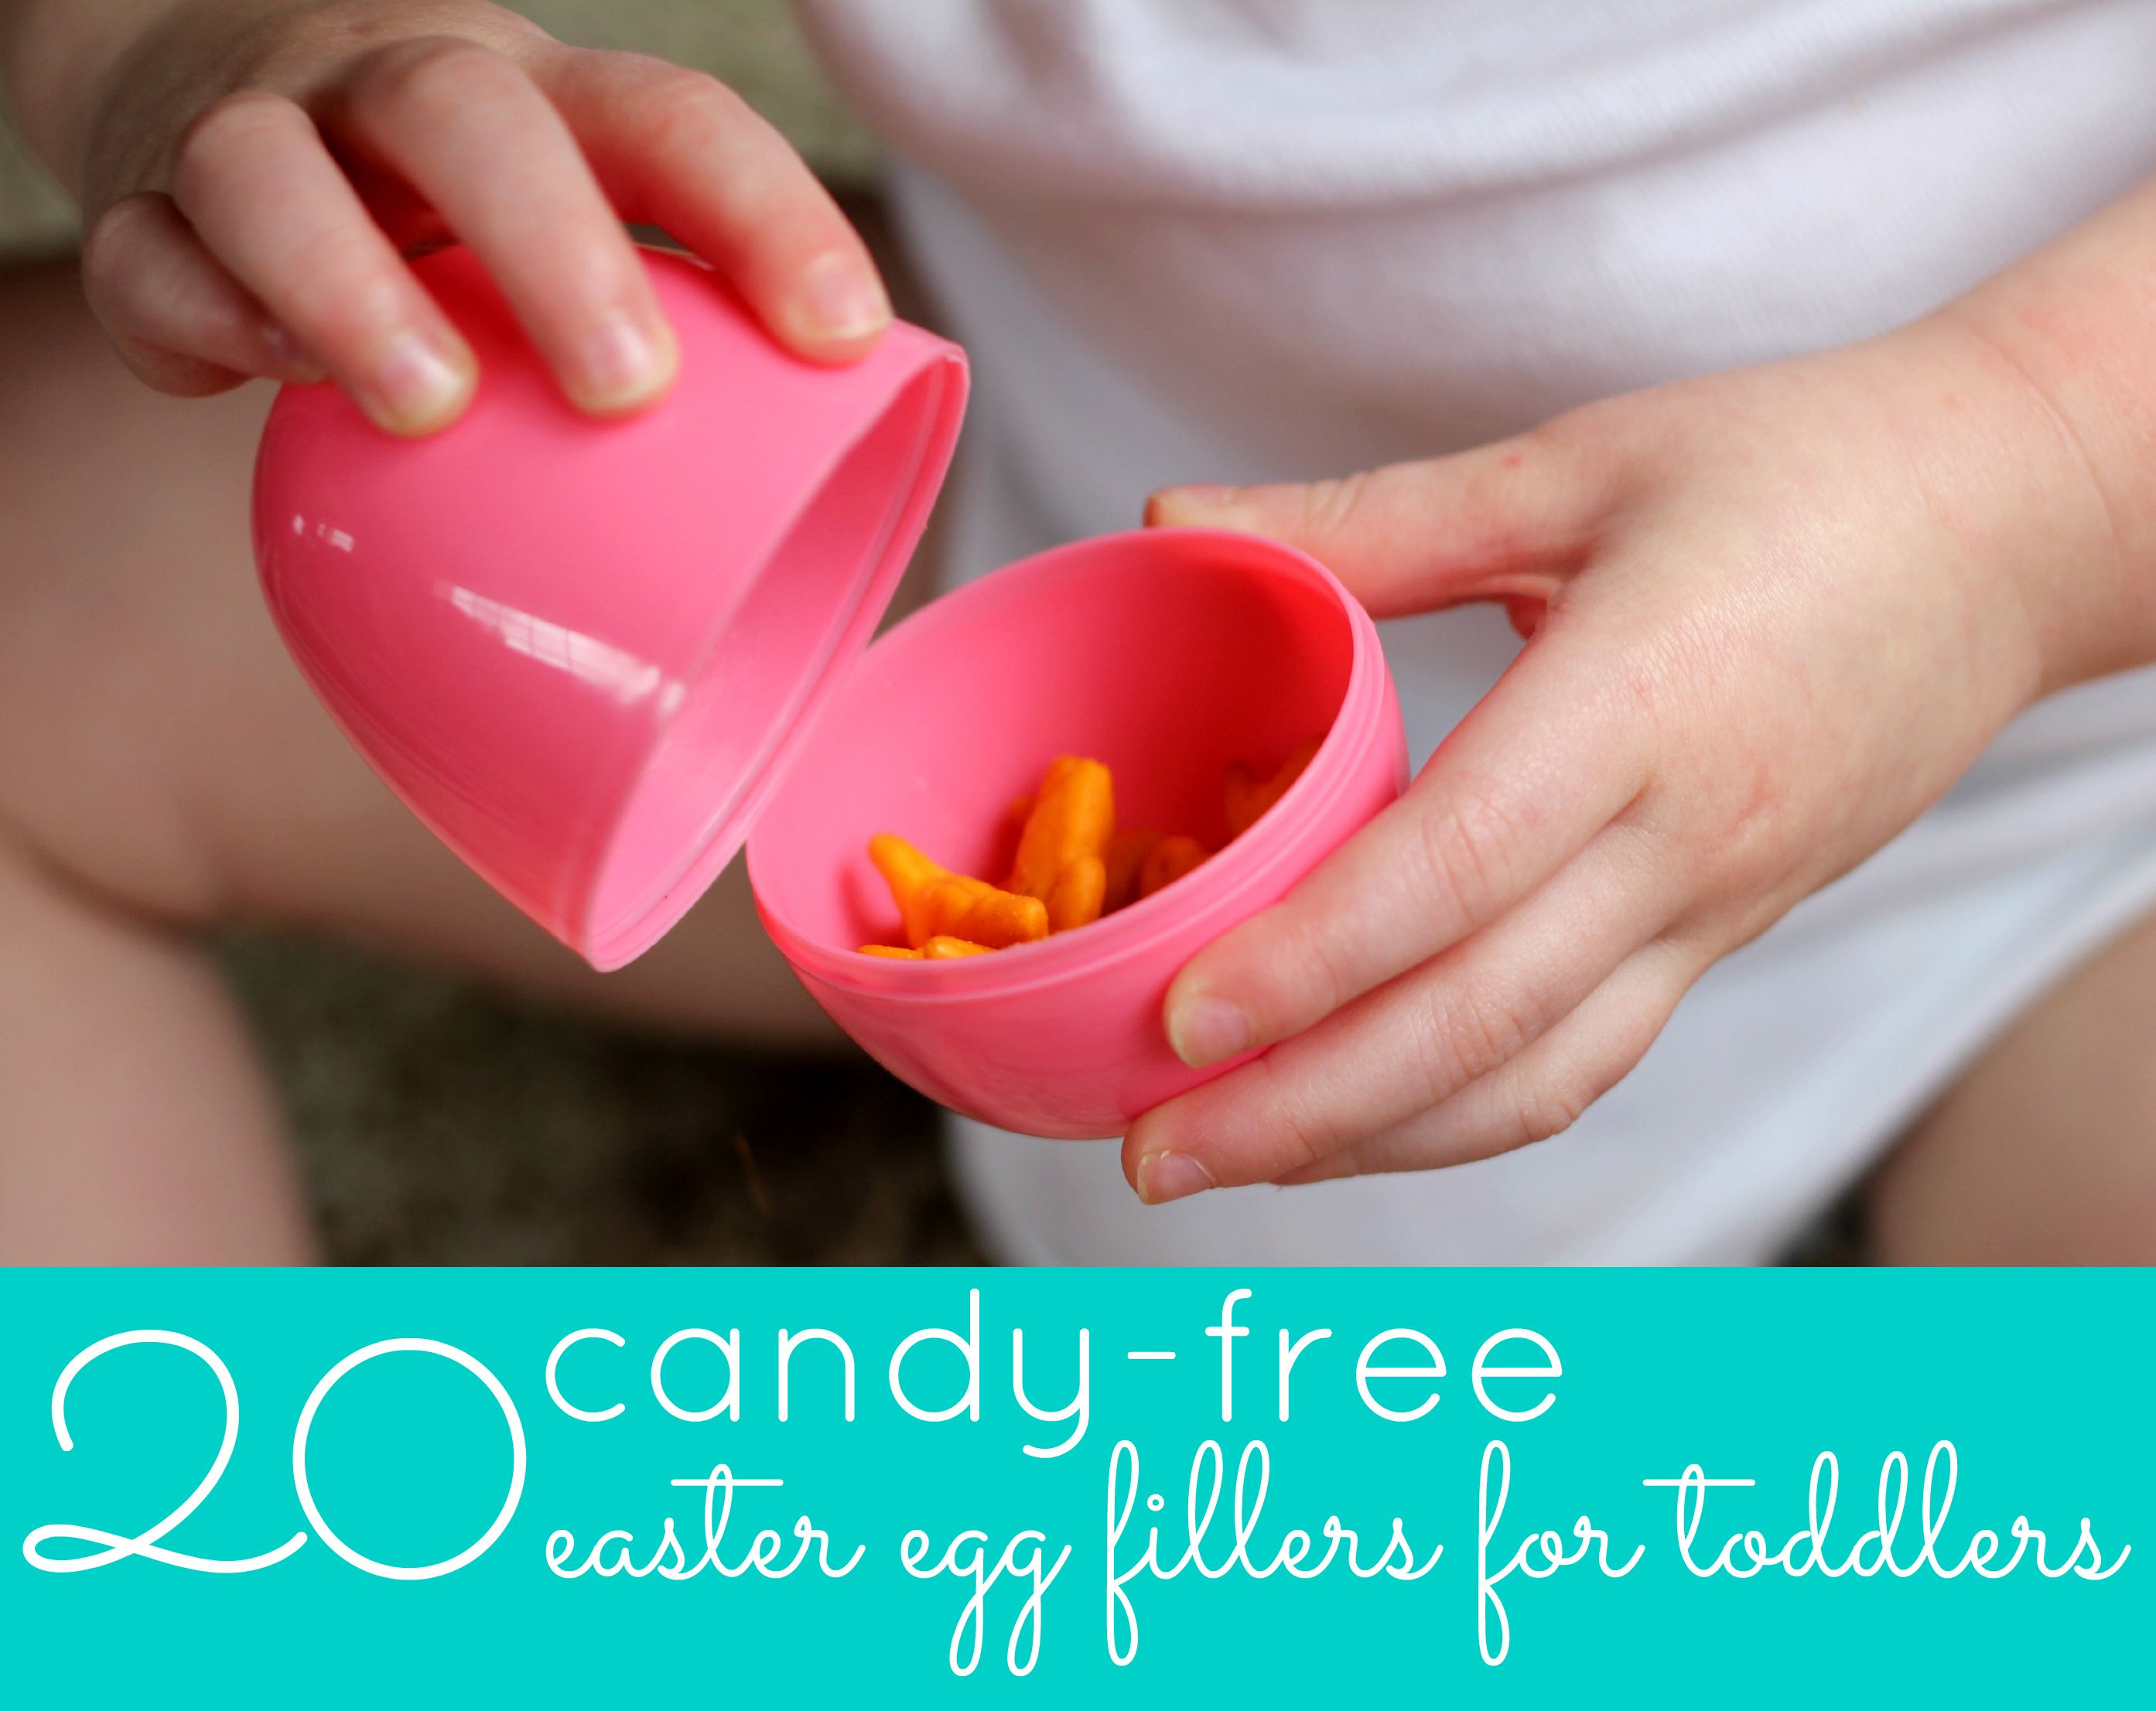 20 candy free easter egg fillers for toddlers what i would like 20 candy free easter egg fillers for toddlers easter basket ideaseaster negle Images